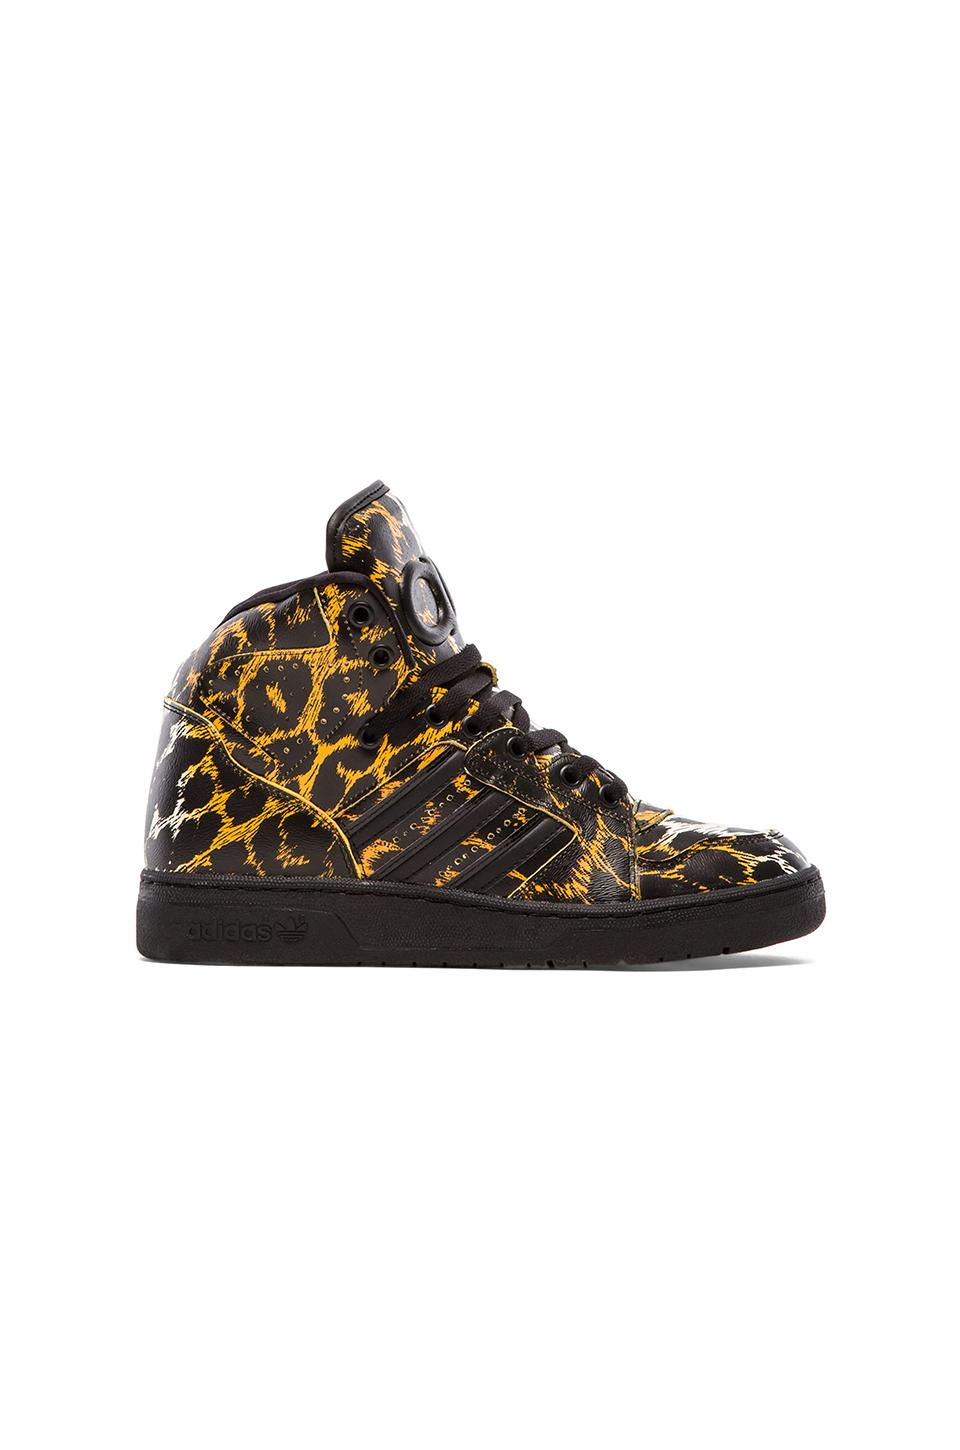 adidas Originals by Jeremy Scott Instinct Hi Leopard in Slime &  Vivid Yellow & Light Orange